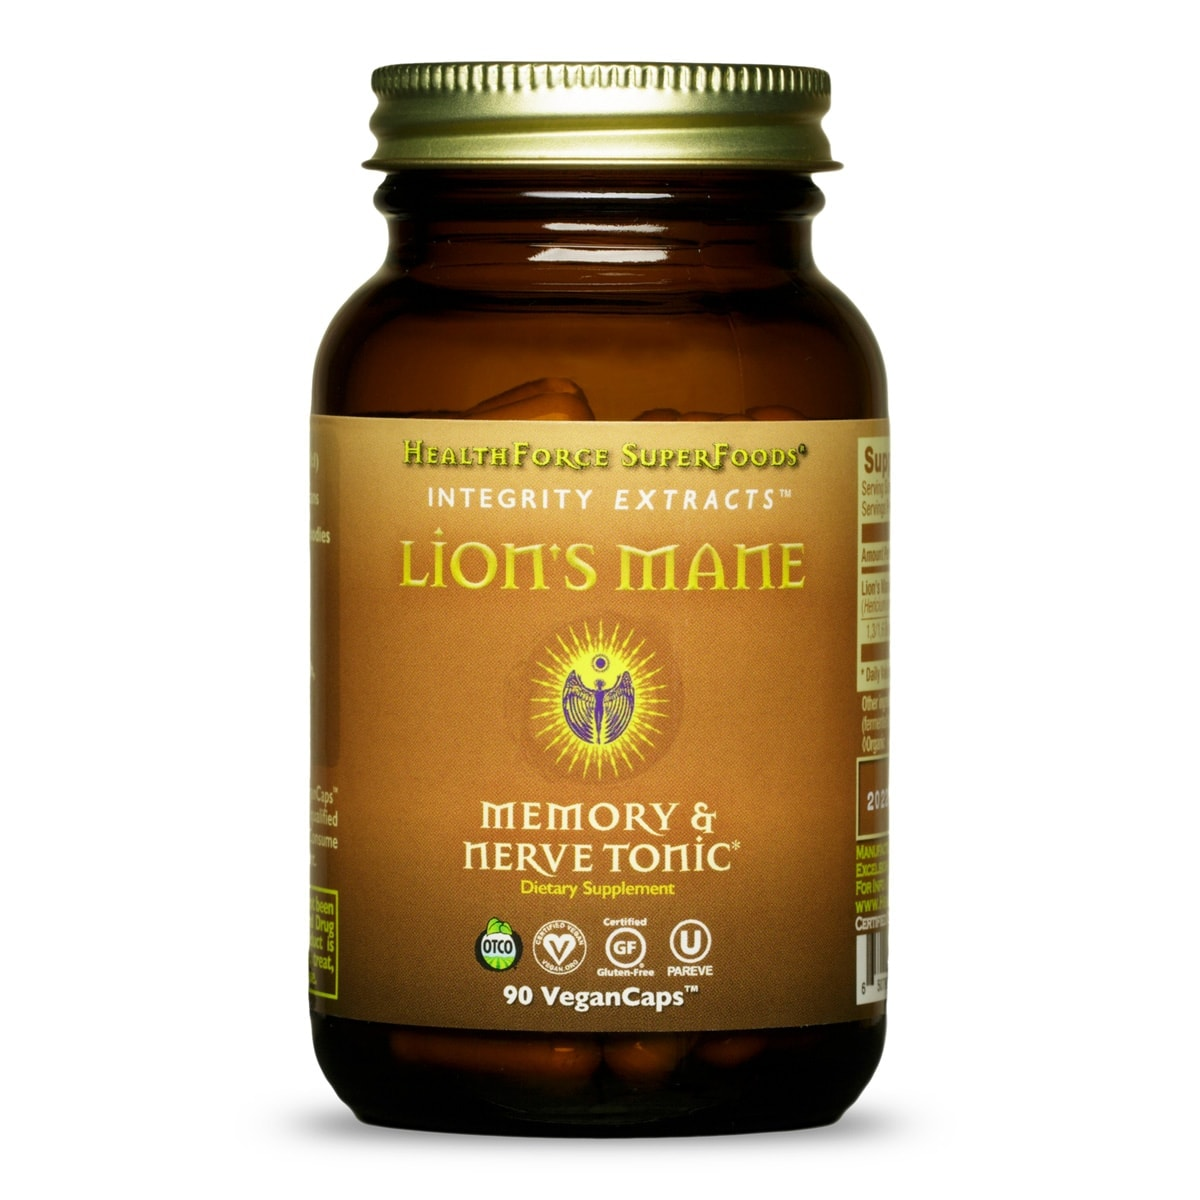 Integrity Extracts™ Lion'S Mane